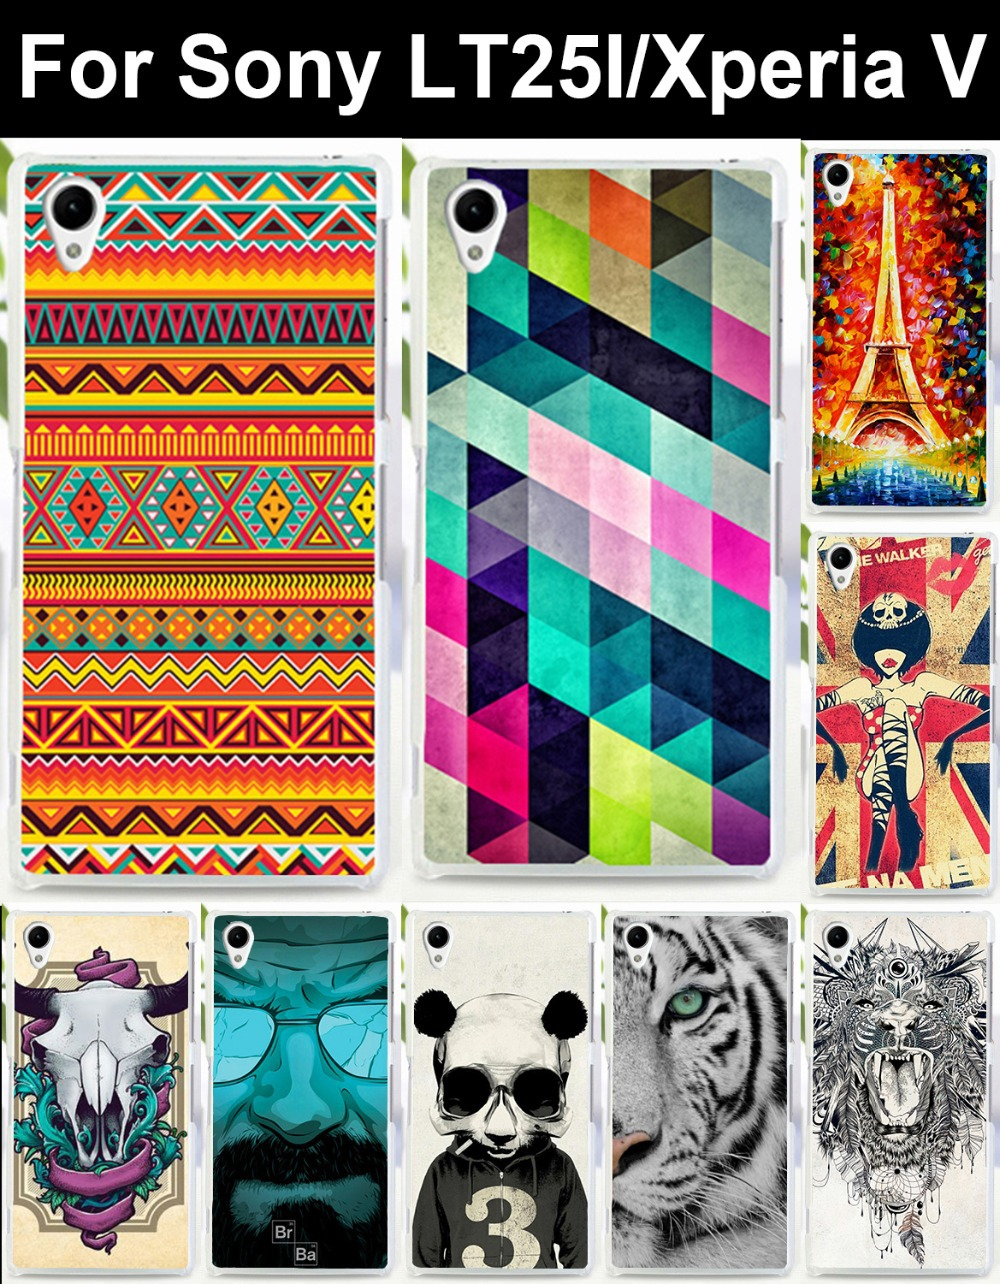 mobile phone case for Sony LT25I LT25h Xperia V hard Back cover Skin Shell Shield cell phone bags Housings Protector sheath(China (Mainland))